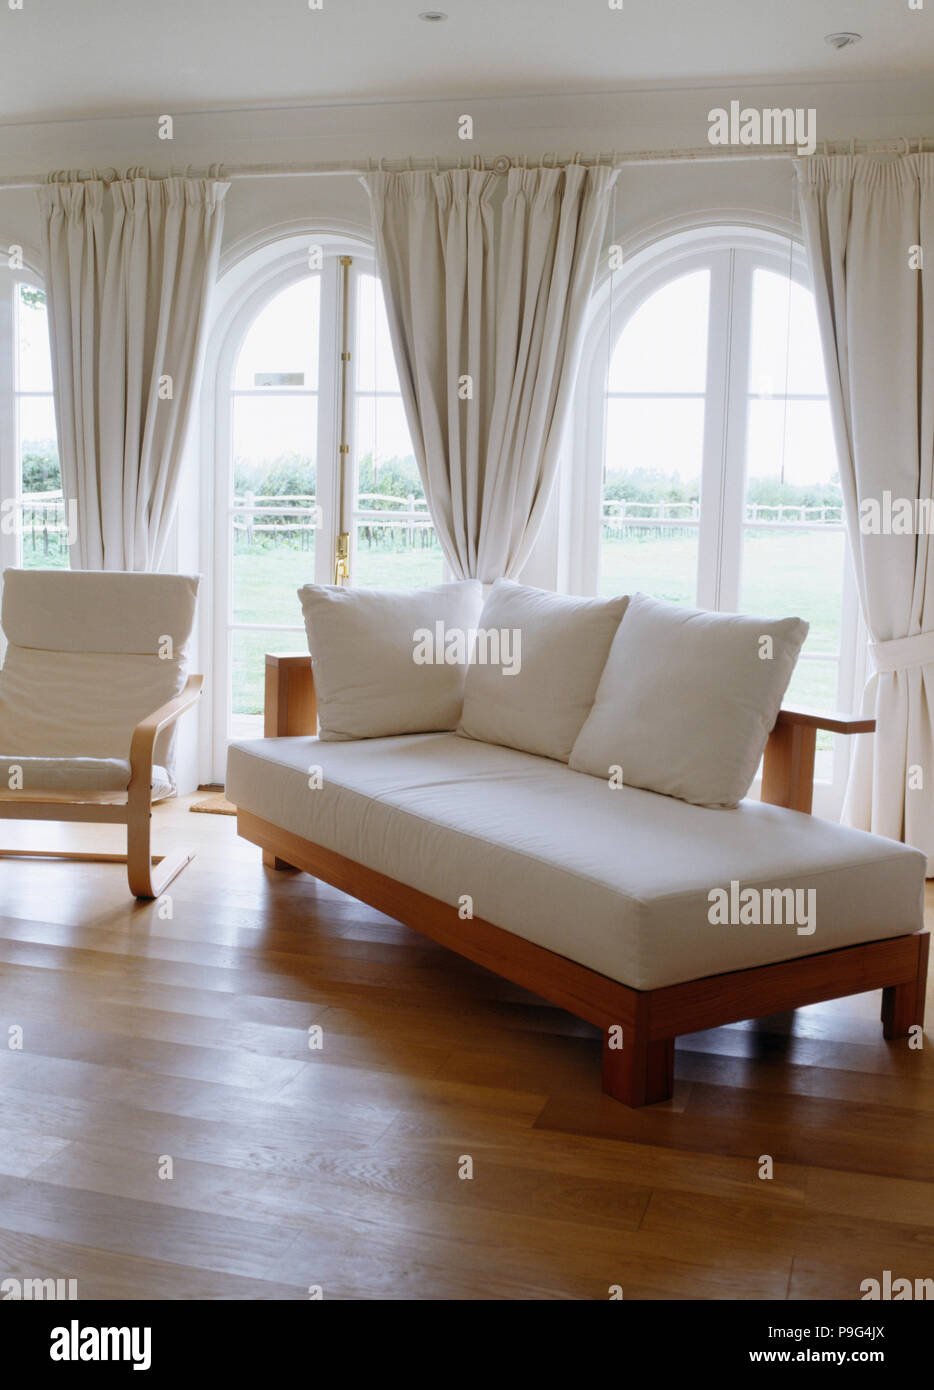 White Sofa In Living Room With Wooden Floor And White Curtains At French Windows Stock Photo Alamy